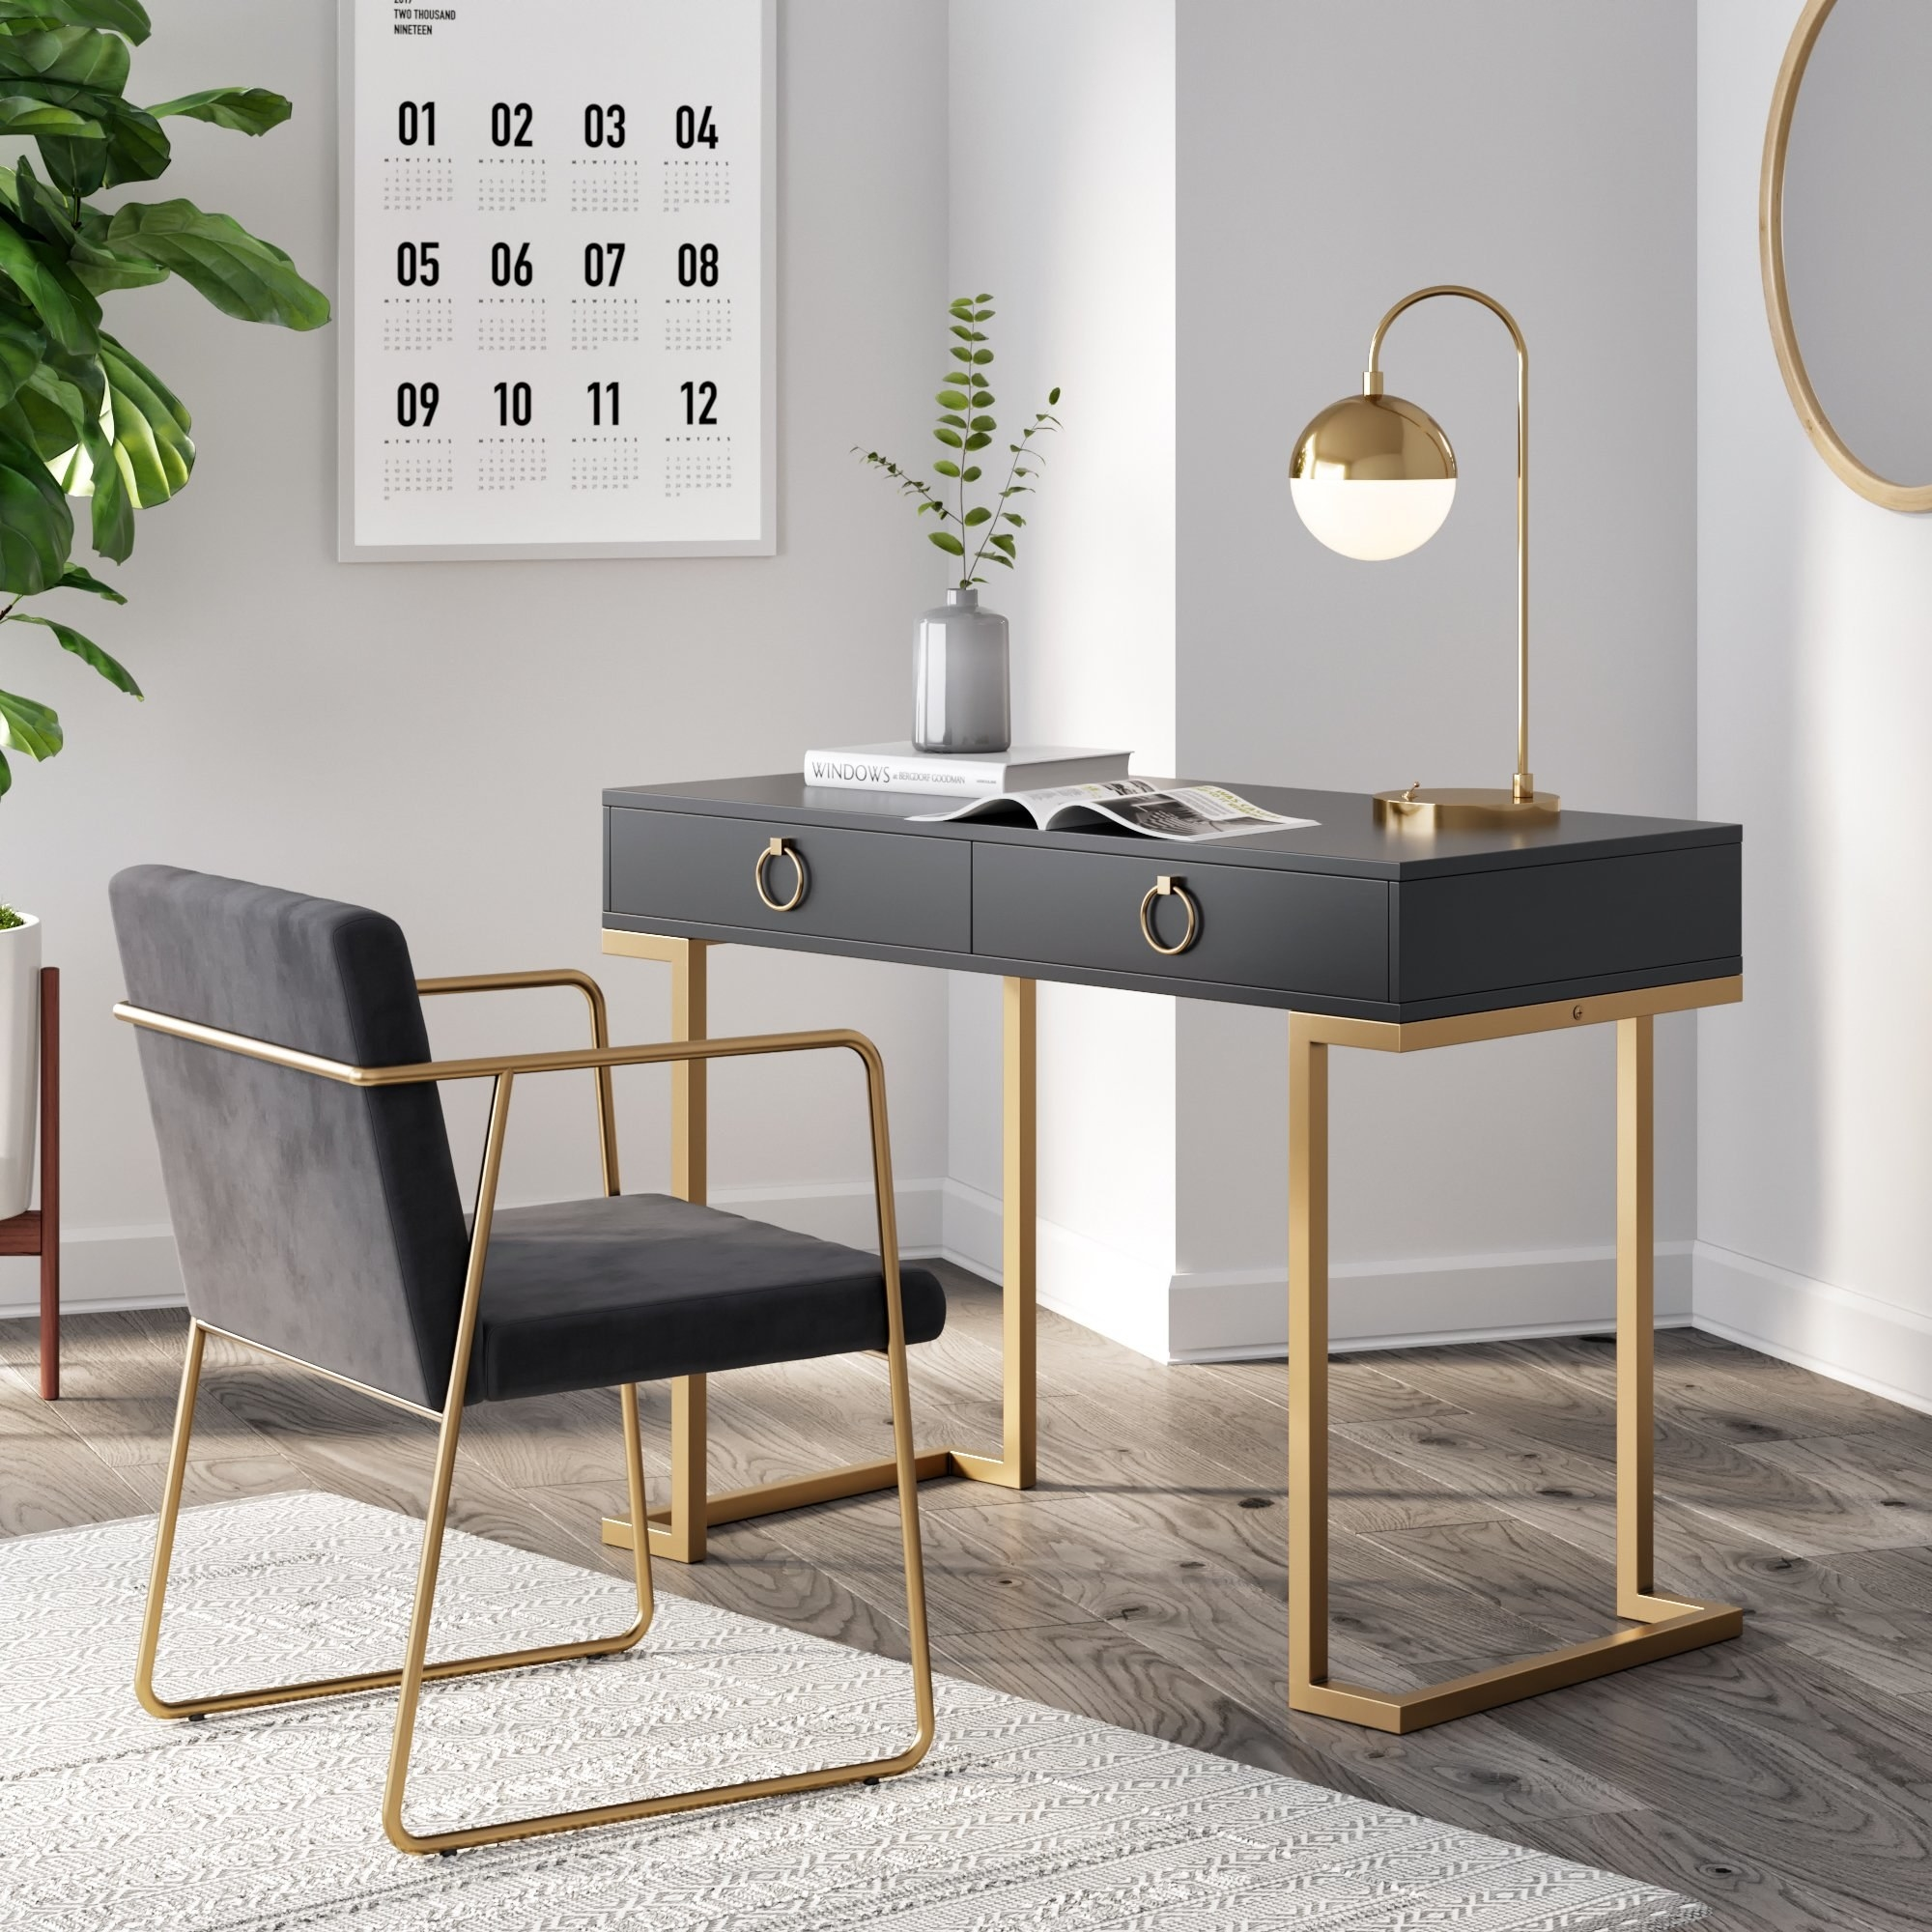 A black desk with round gold drawers knobs and open gold legs